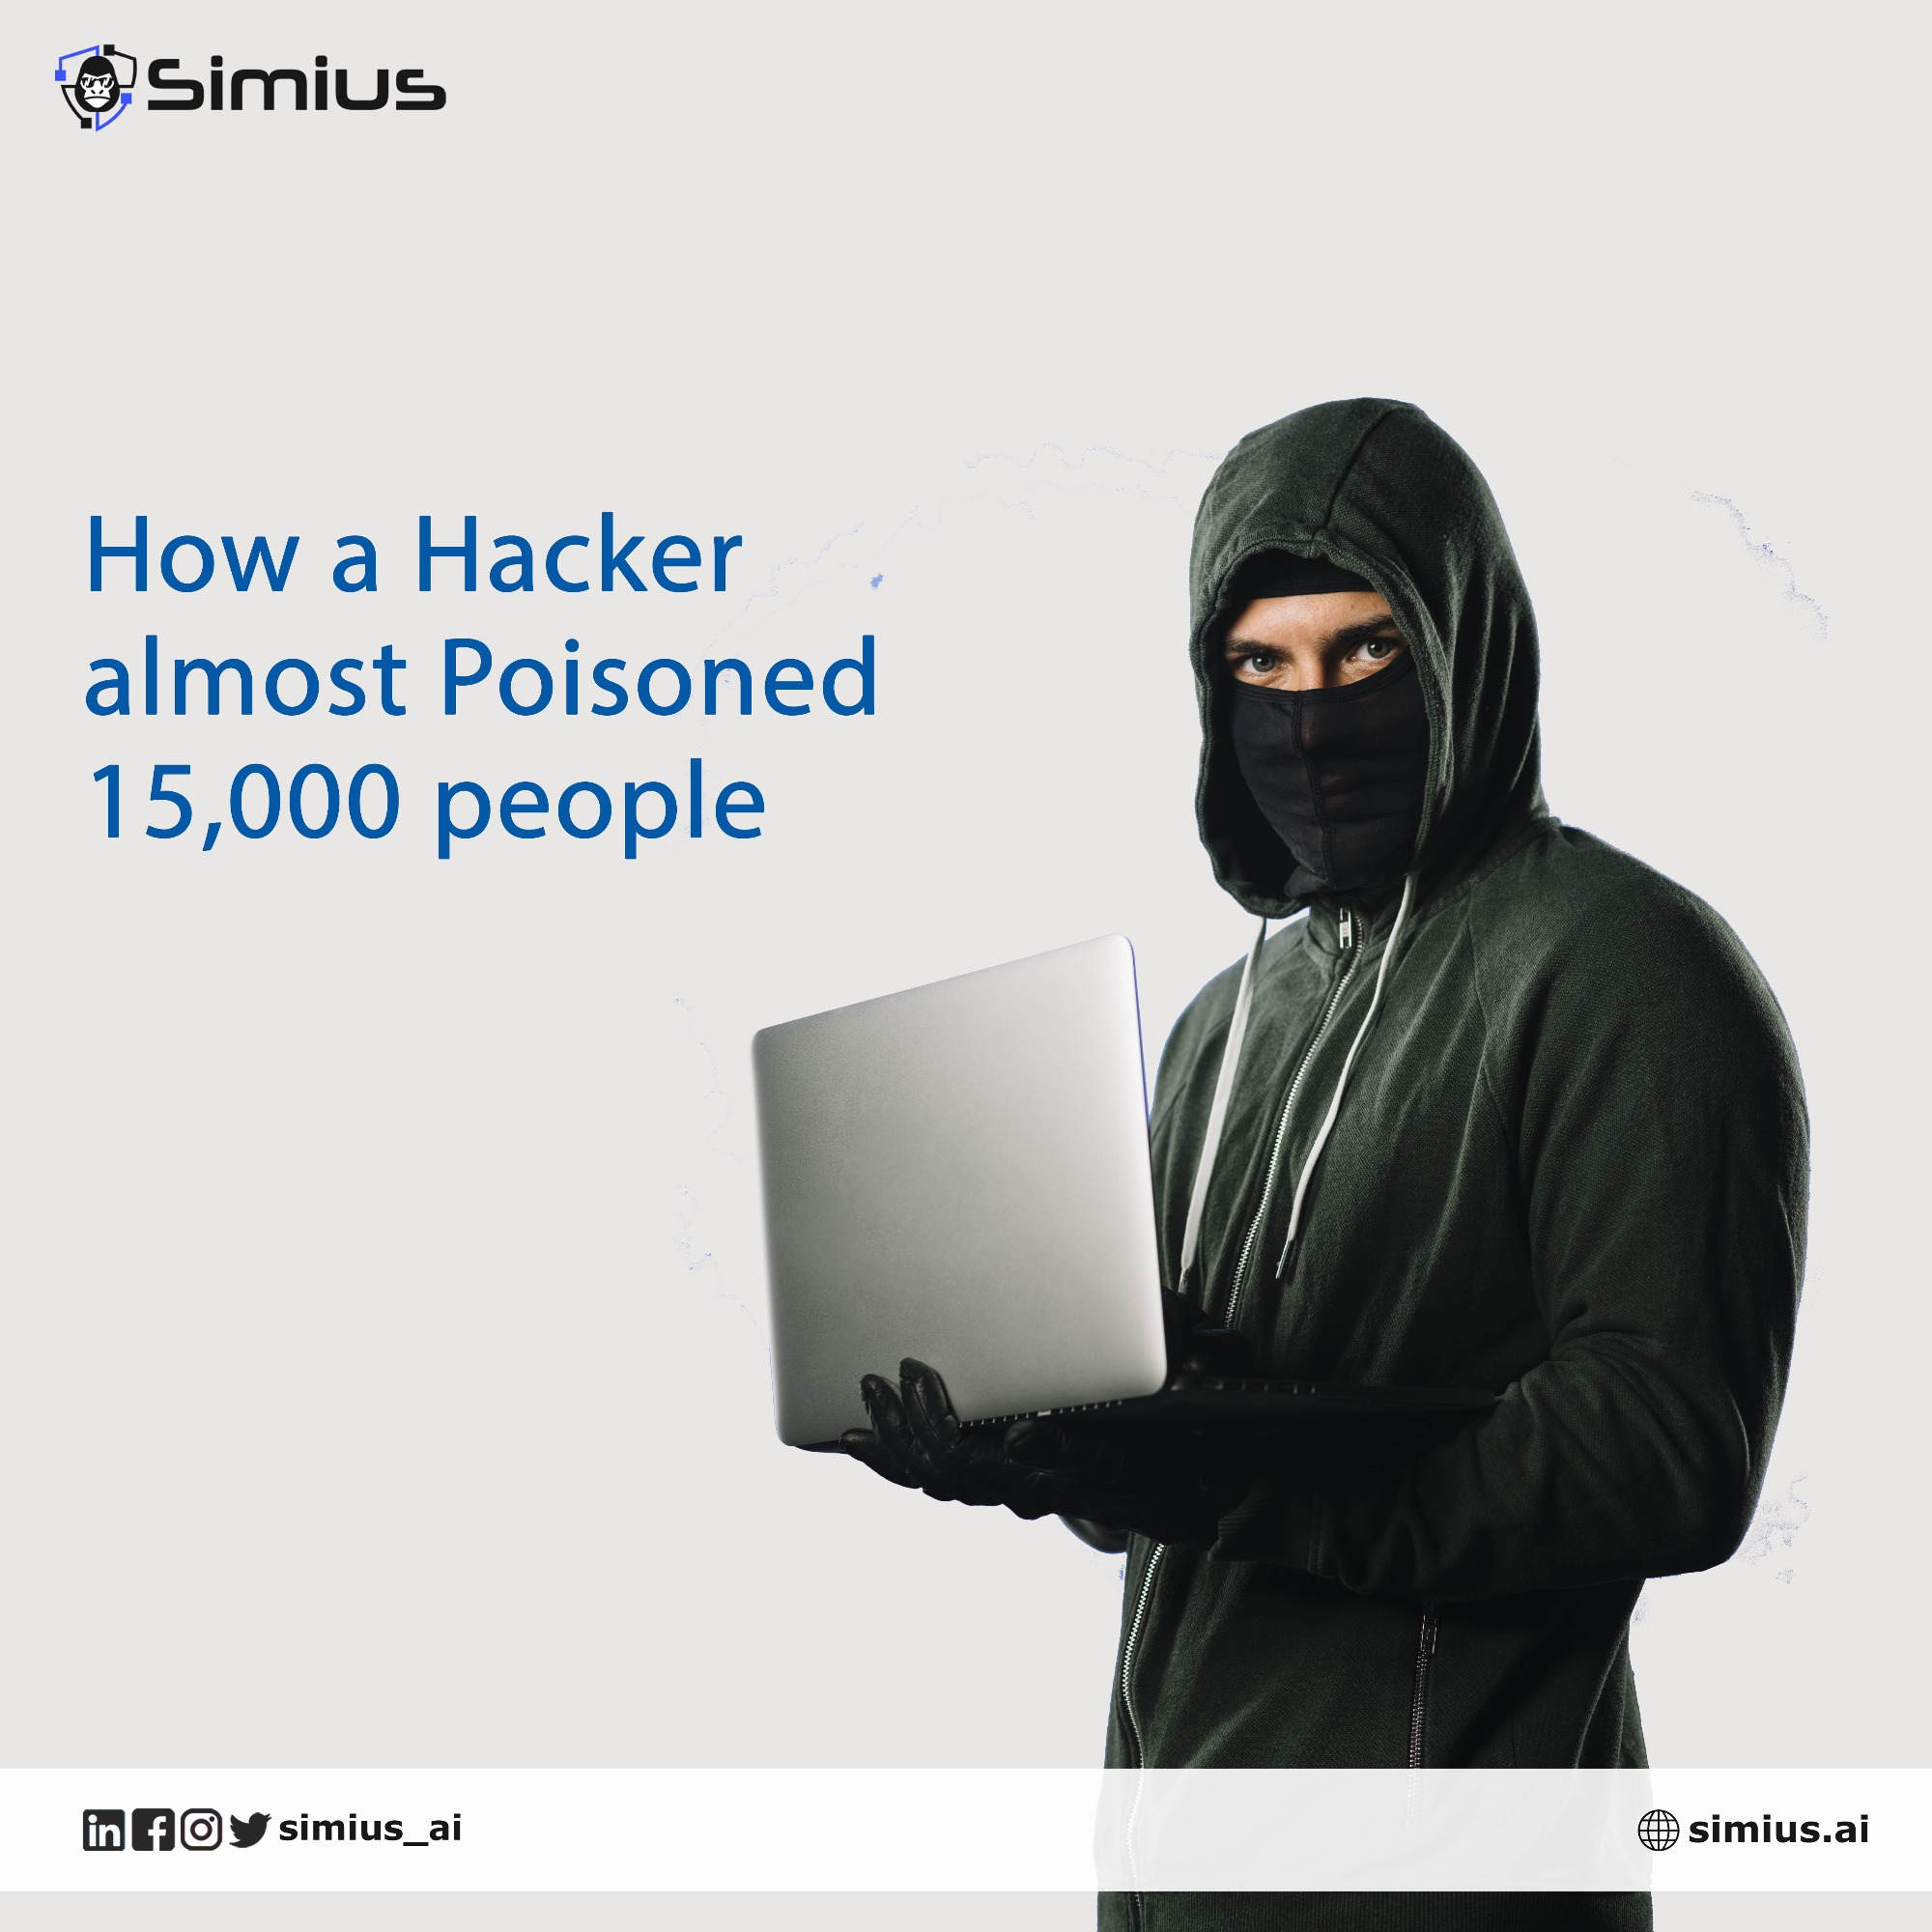 How a Hacker almost Poisoned 15,000 people